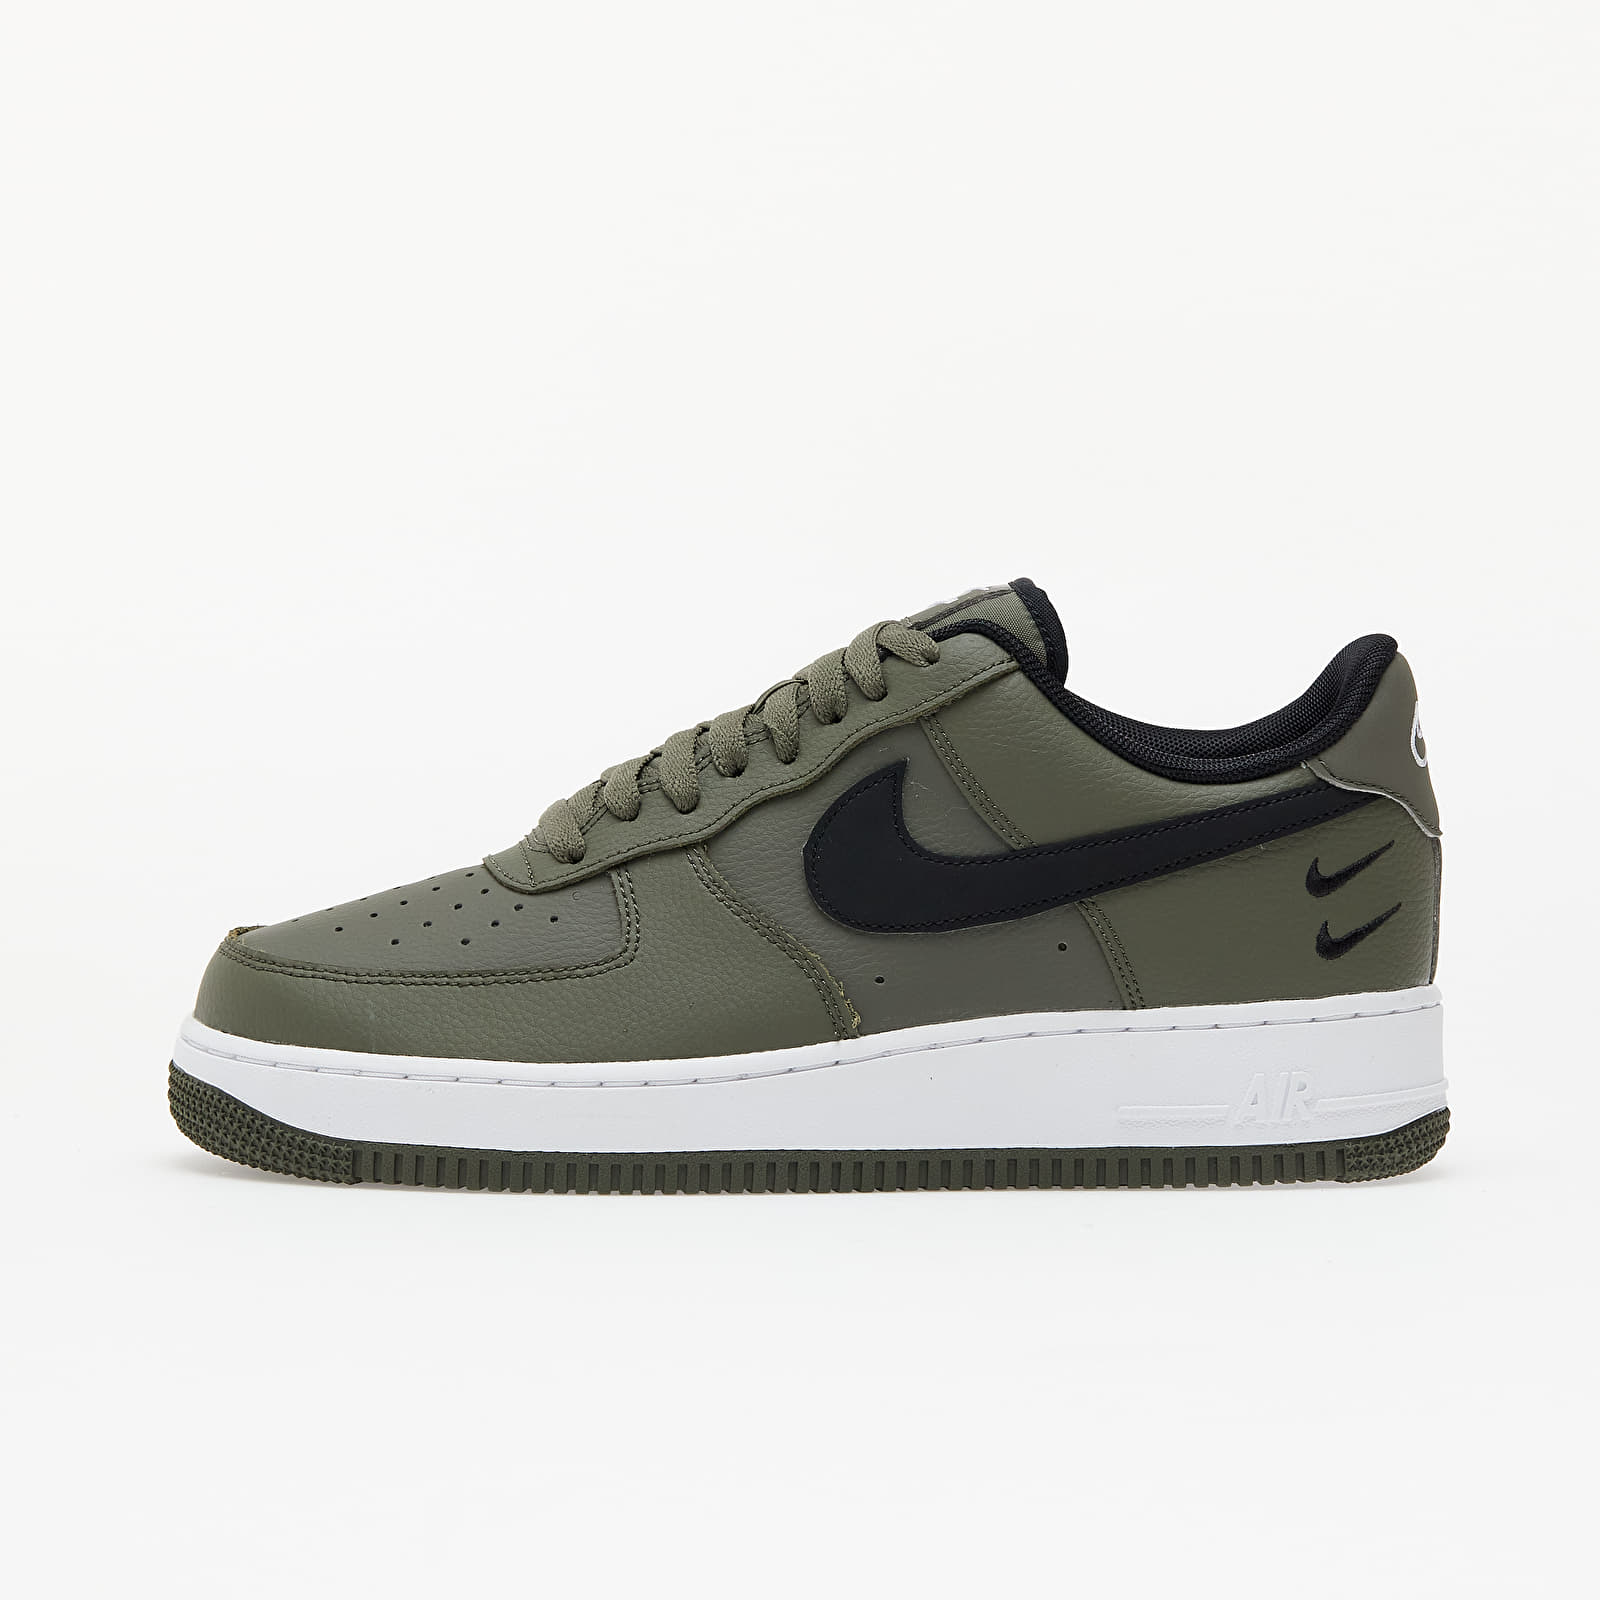 Nike Air Force 1 '07 Twilight Marsh/ Black-White EUR 41